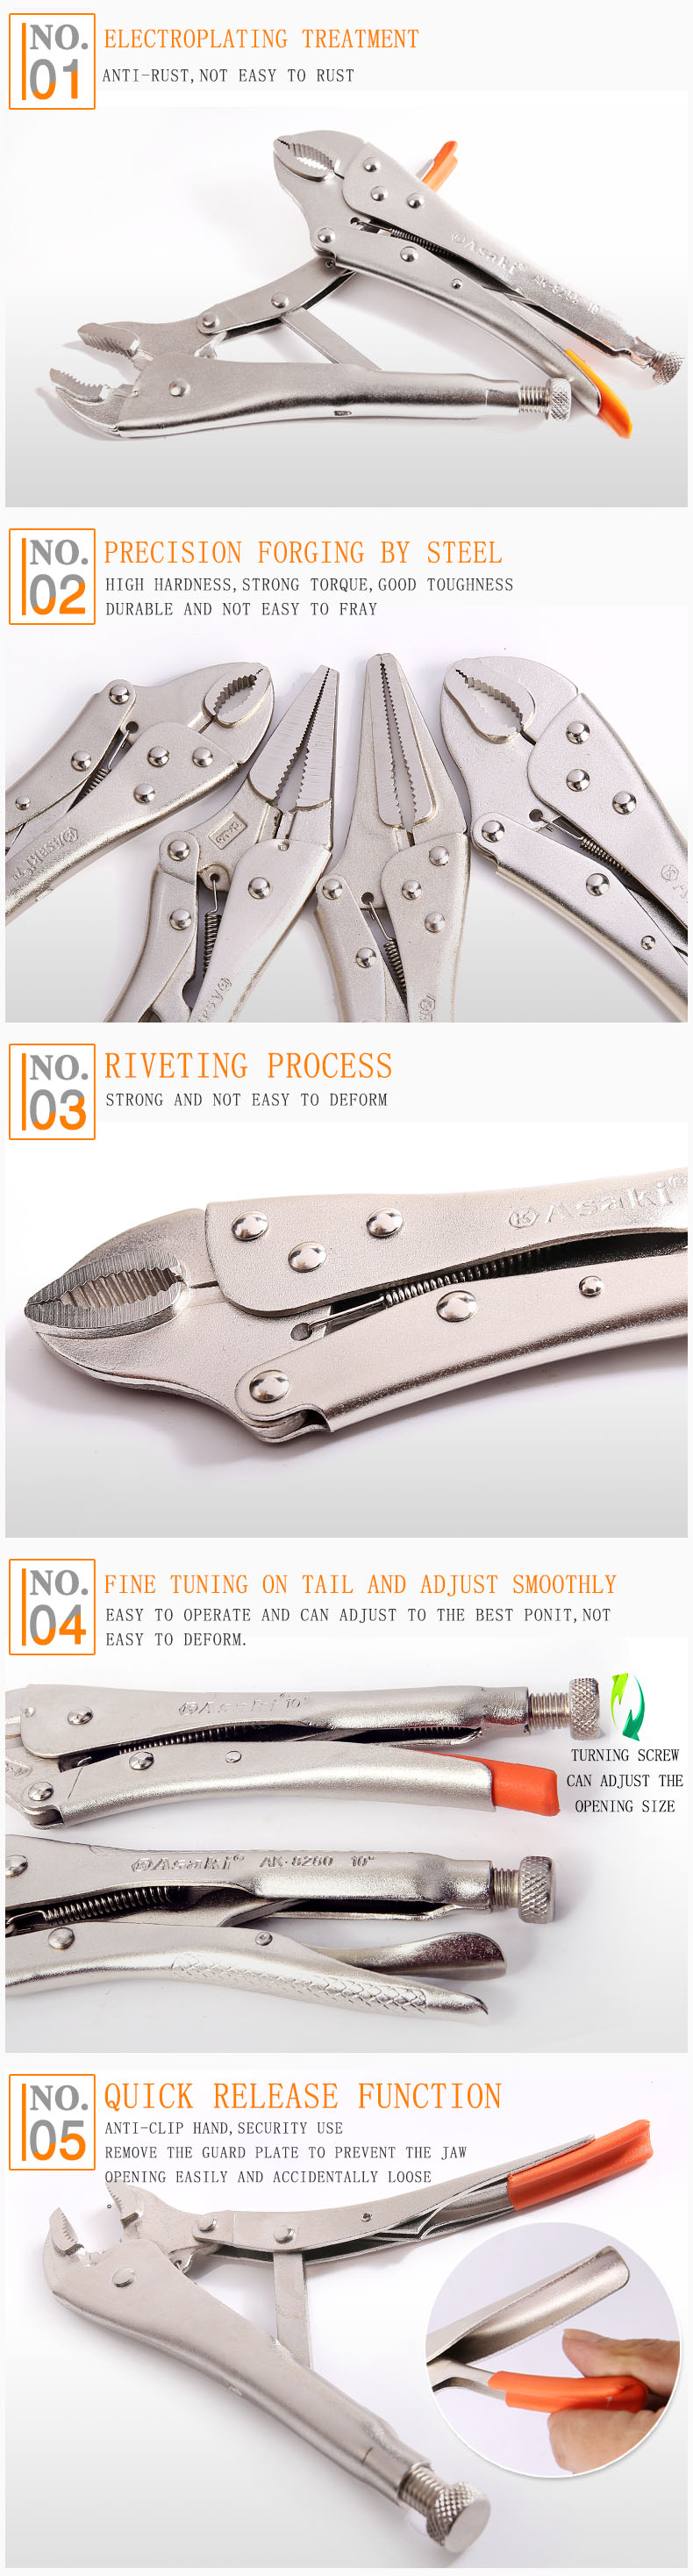 AK-8280 High quality Curved Jaw Vise Grip Pliers